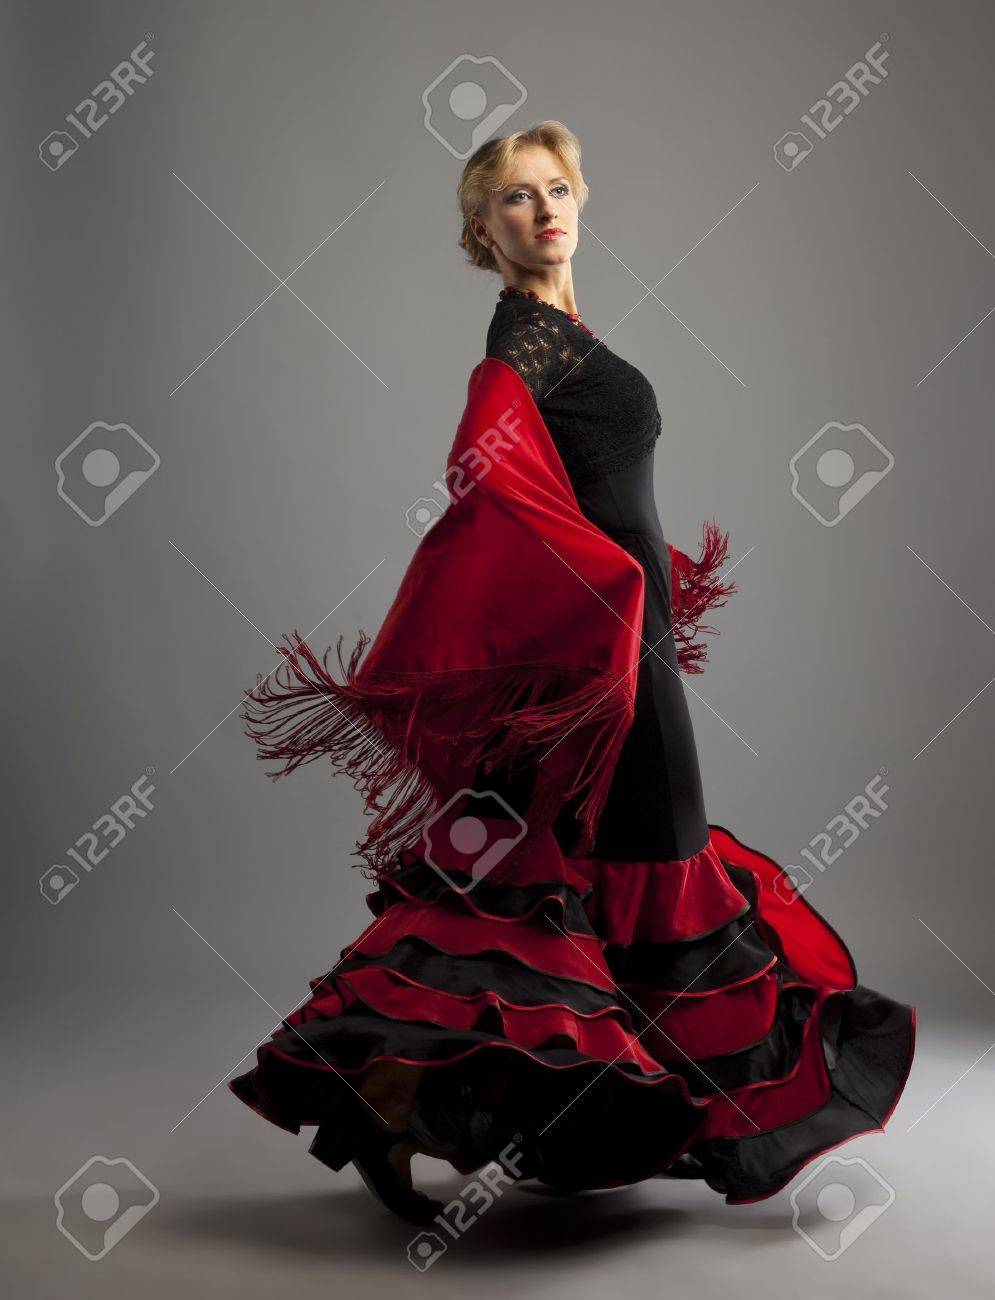 Beauty woman dance flamenco in black and red costume Stock Photo - 9124994